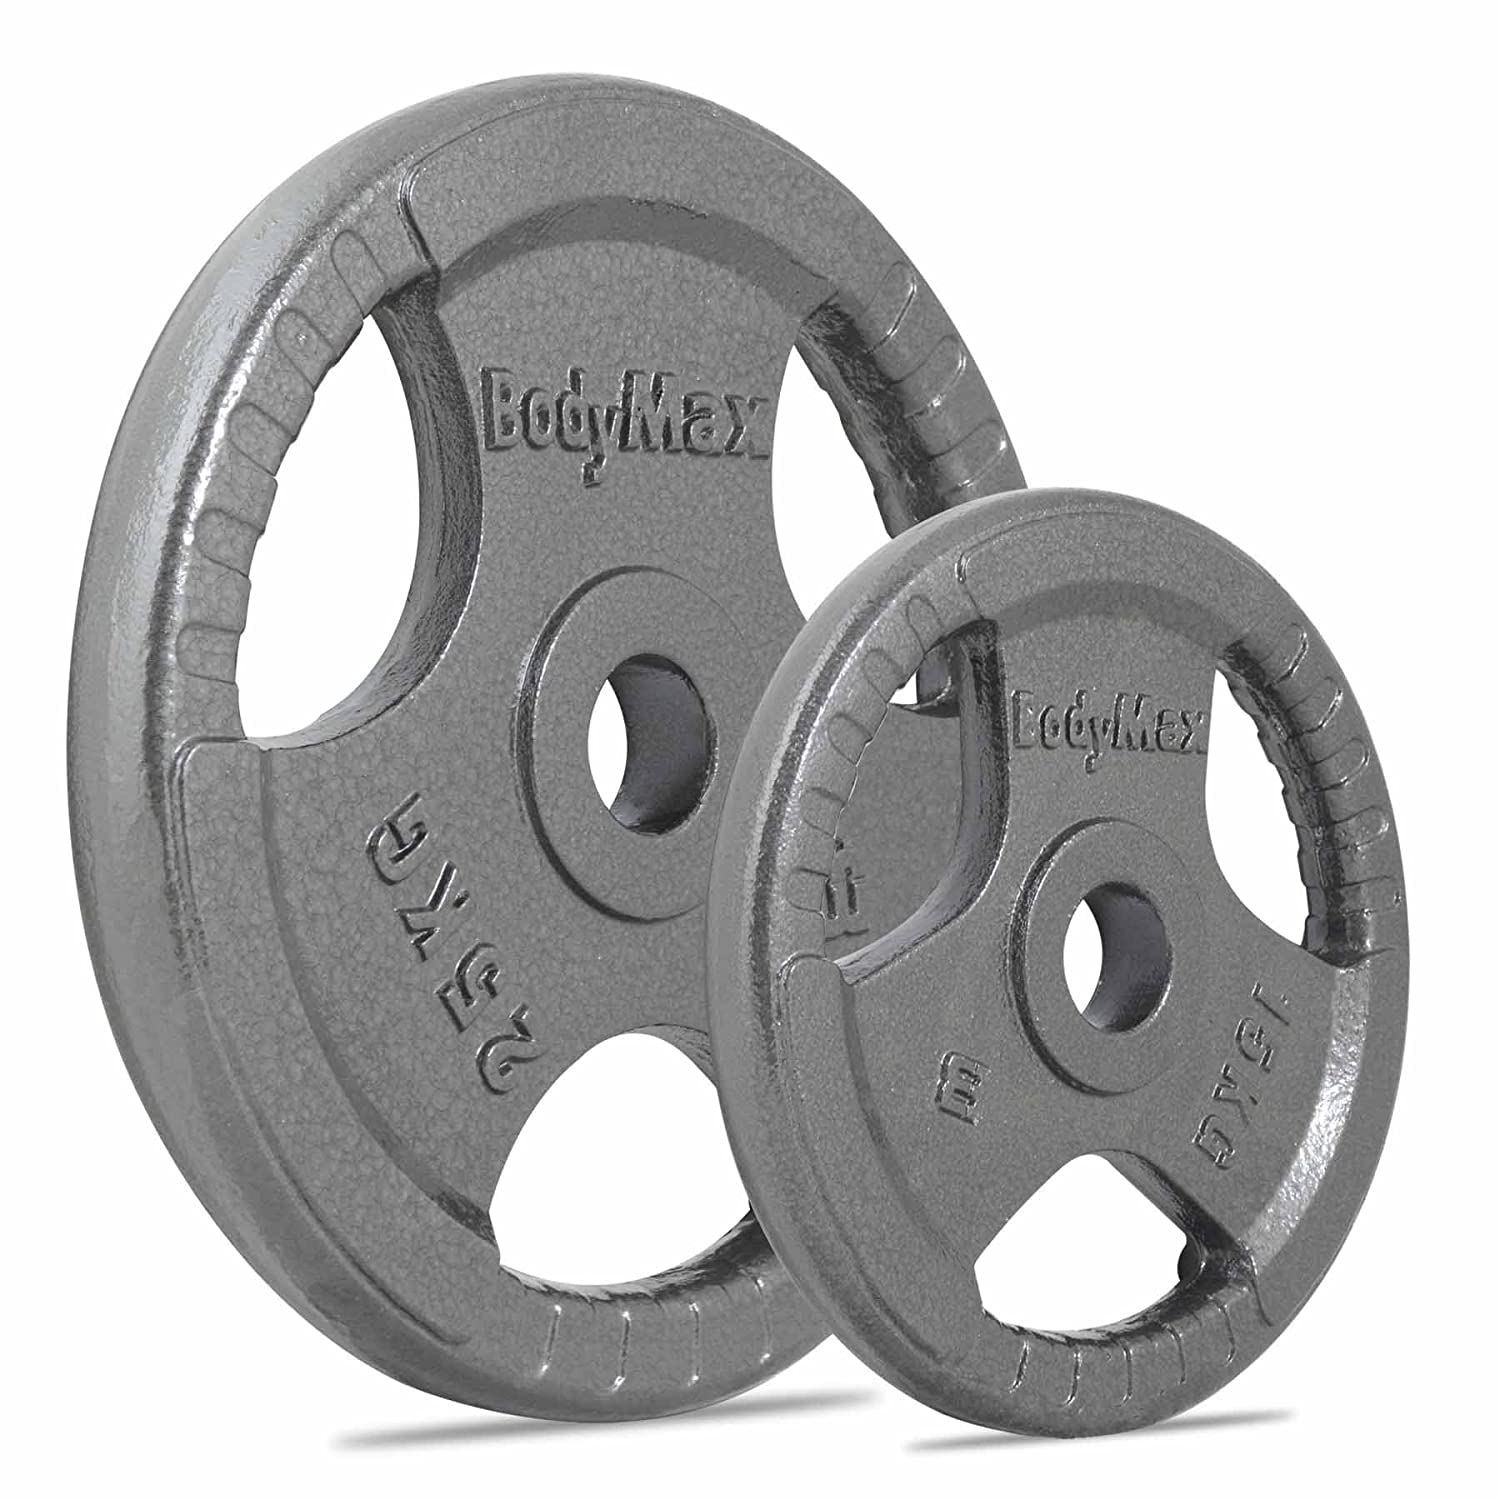 Bodymax olympic cast iron weight plates amazon sports bodymax olympic cast iron weight plates amazon sports outdoors nvjuhfo Image collections